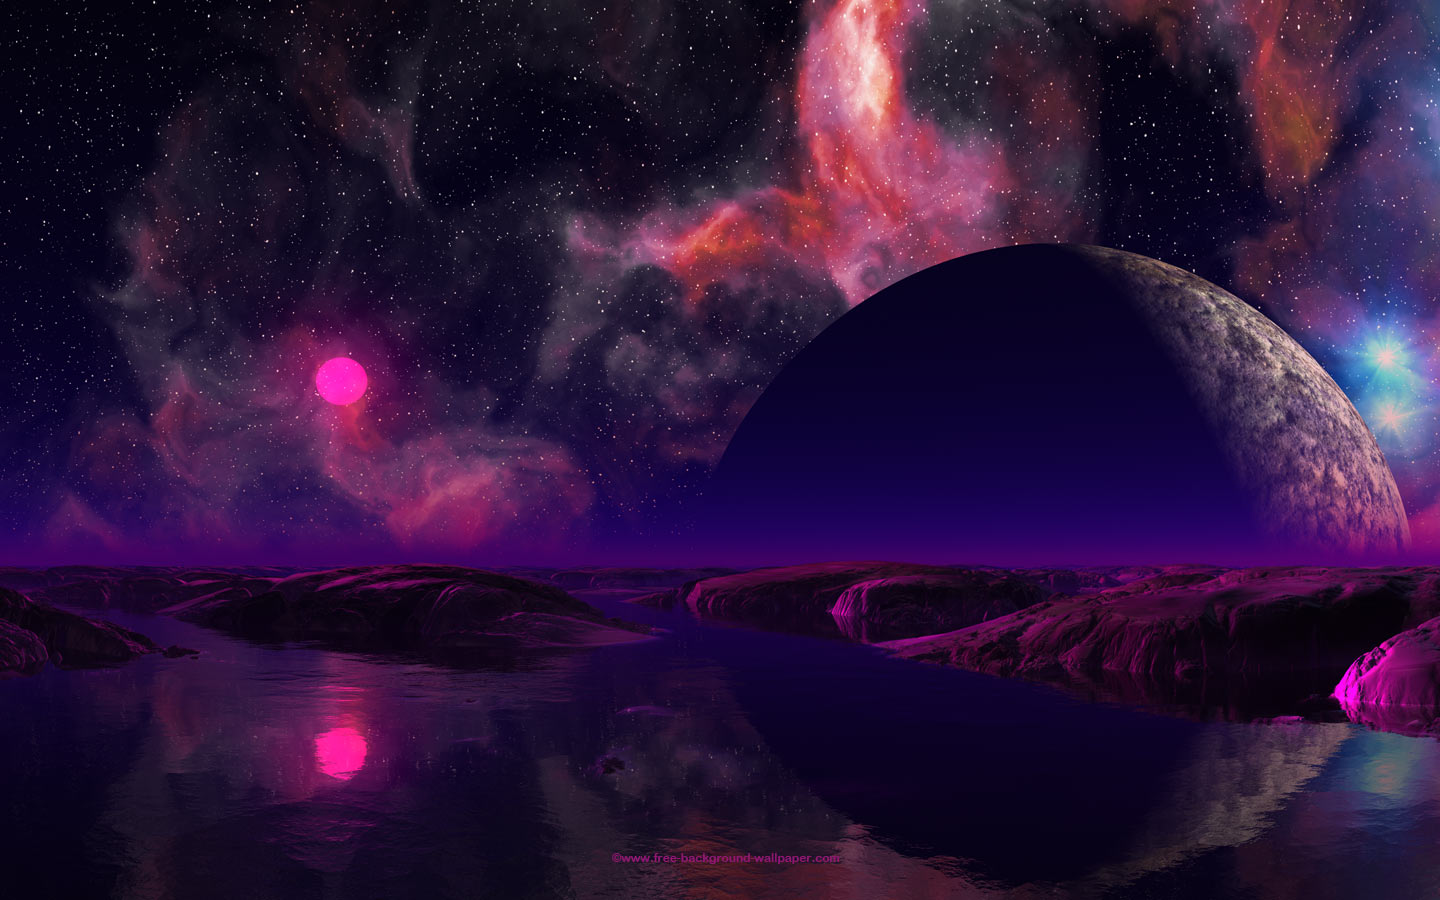 Anila, Goddess of the Elements Pink-sun-over-water-planet